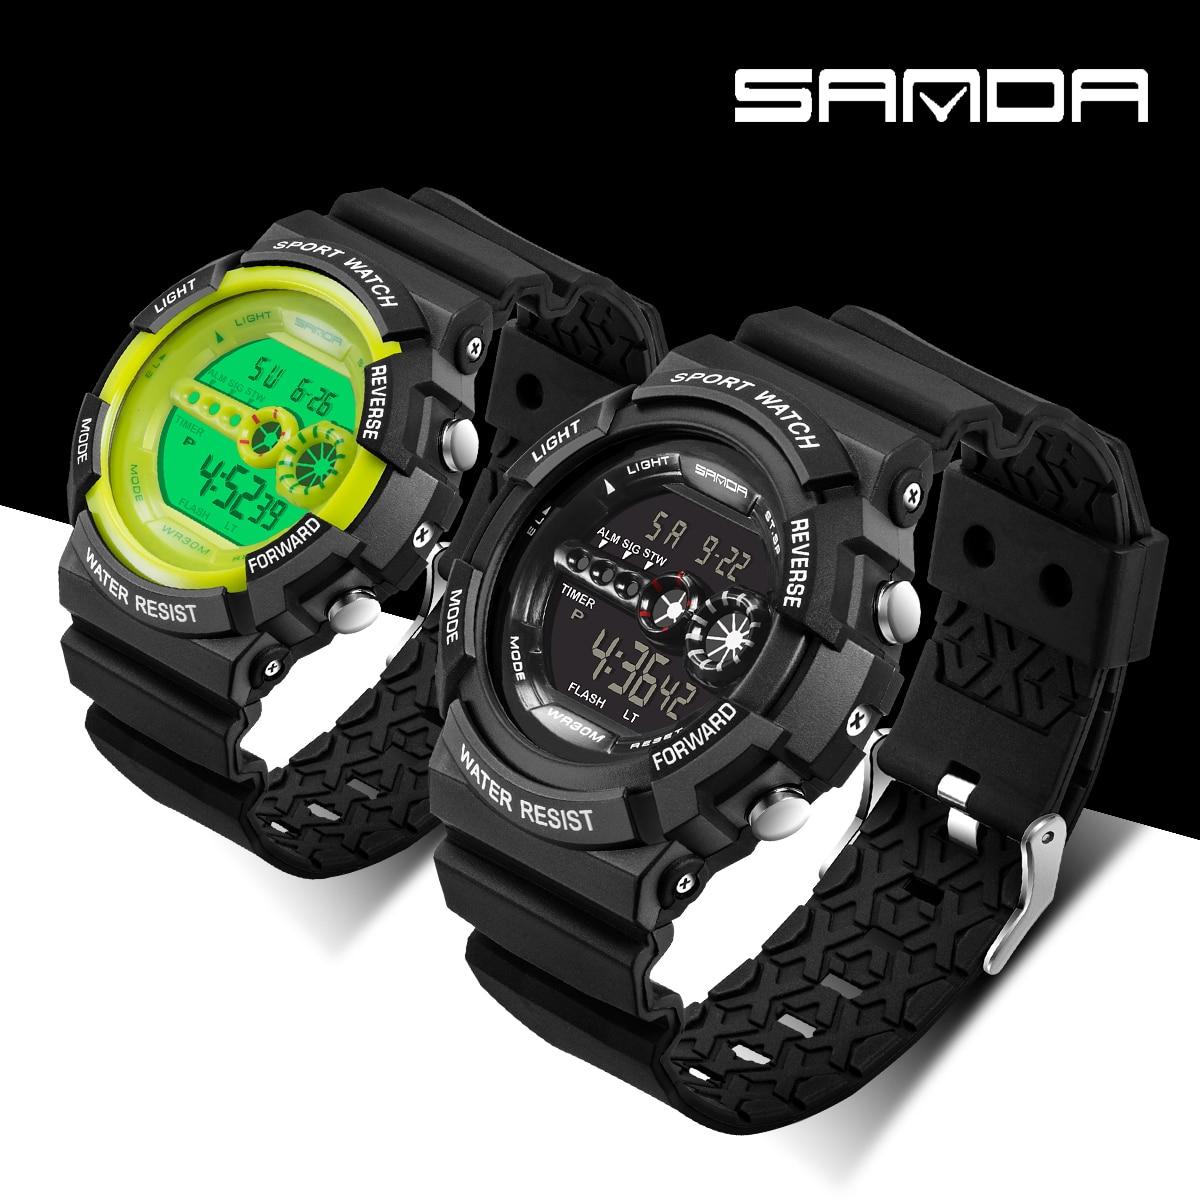 SANDA Digital Watch G Style Man's Outdoors Sports Watch Waterproof Military Shock Resistant Multifunction Watches relojes hombre enlarge